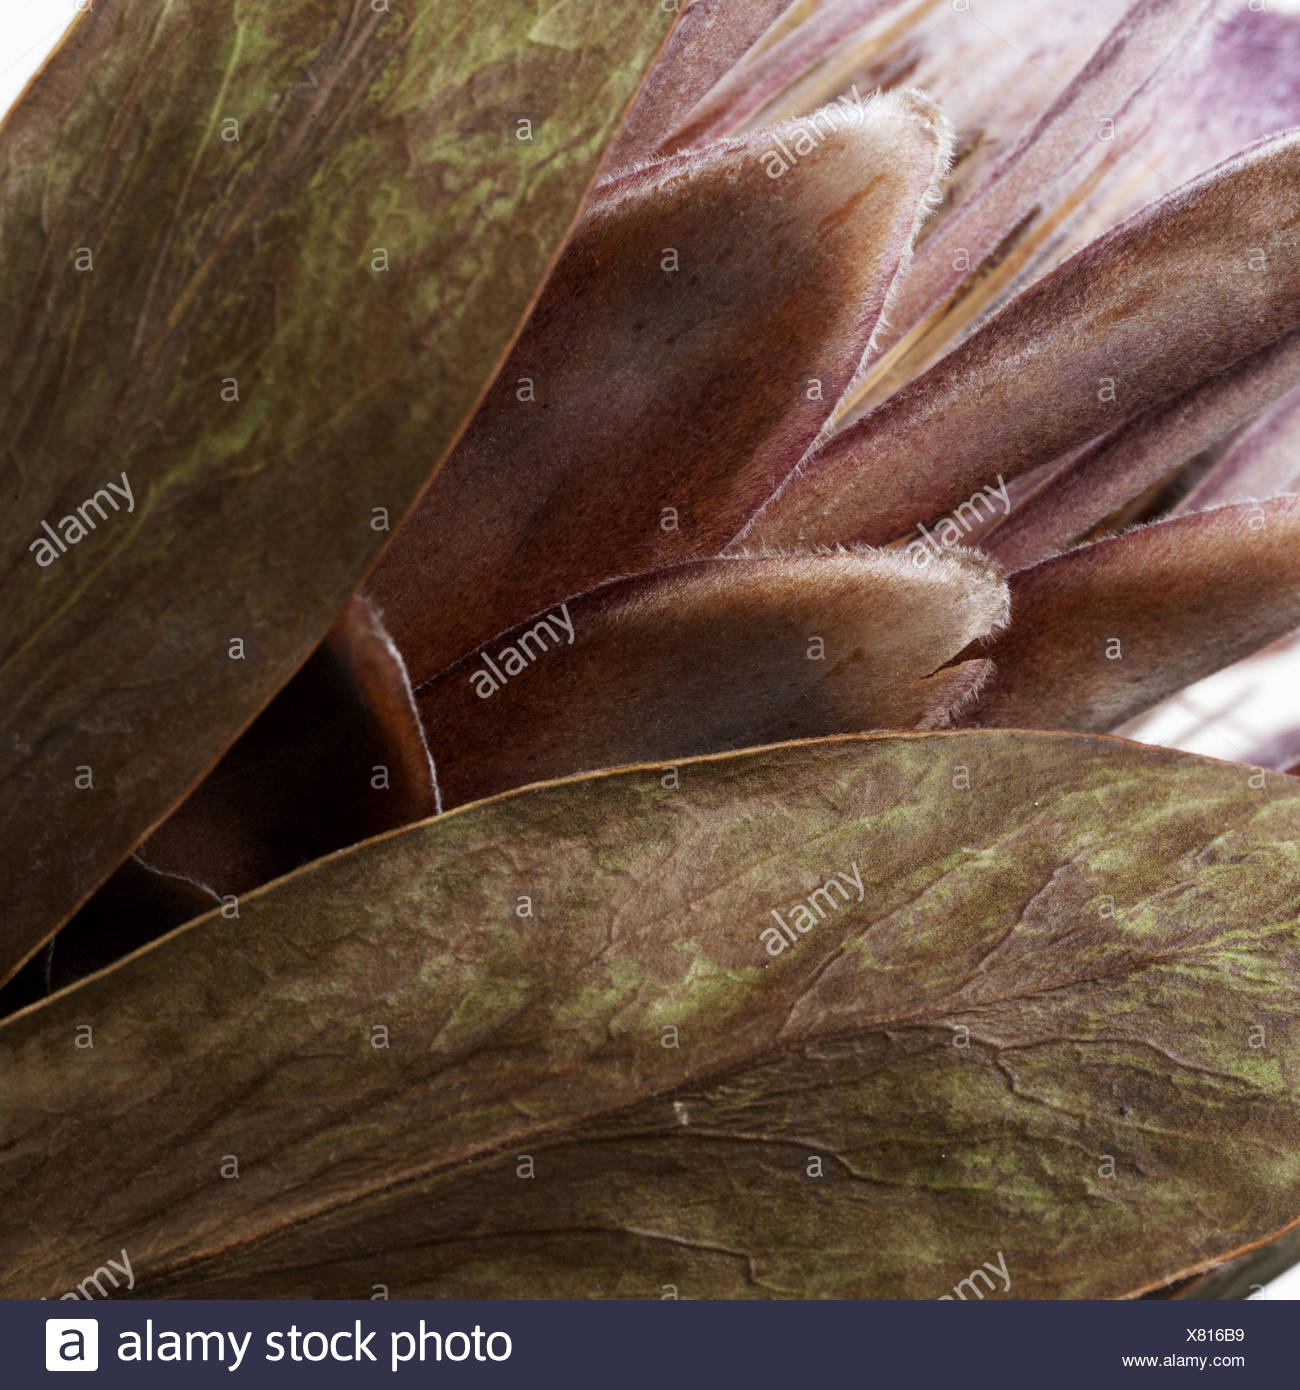 dried flower, close-up, thistle, flower, blossom, dry, withered, decoration, detail, plant, structure, - Stock Image